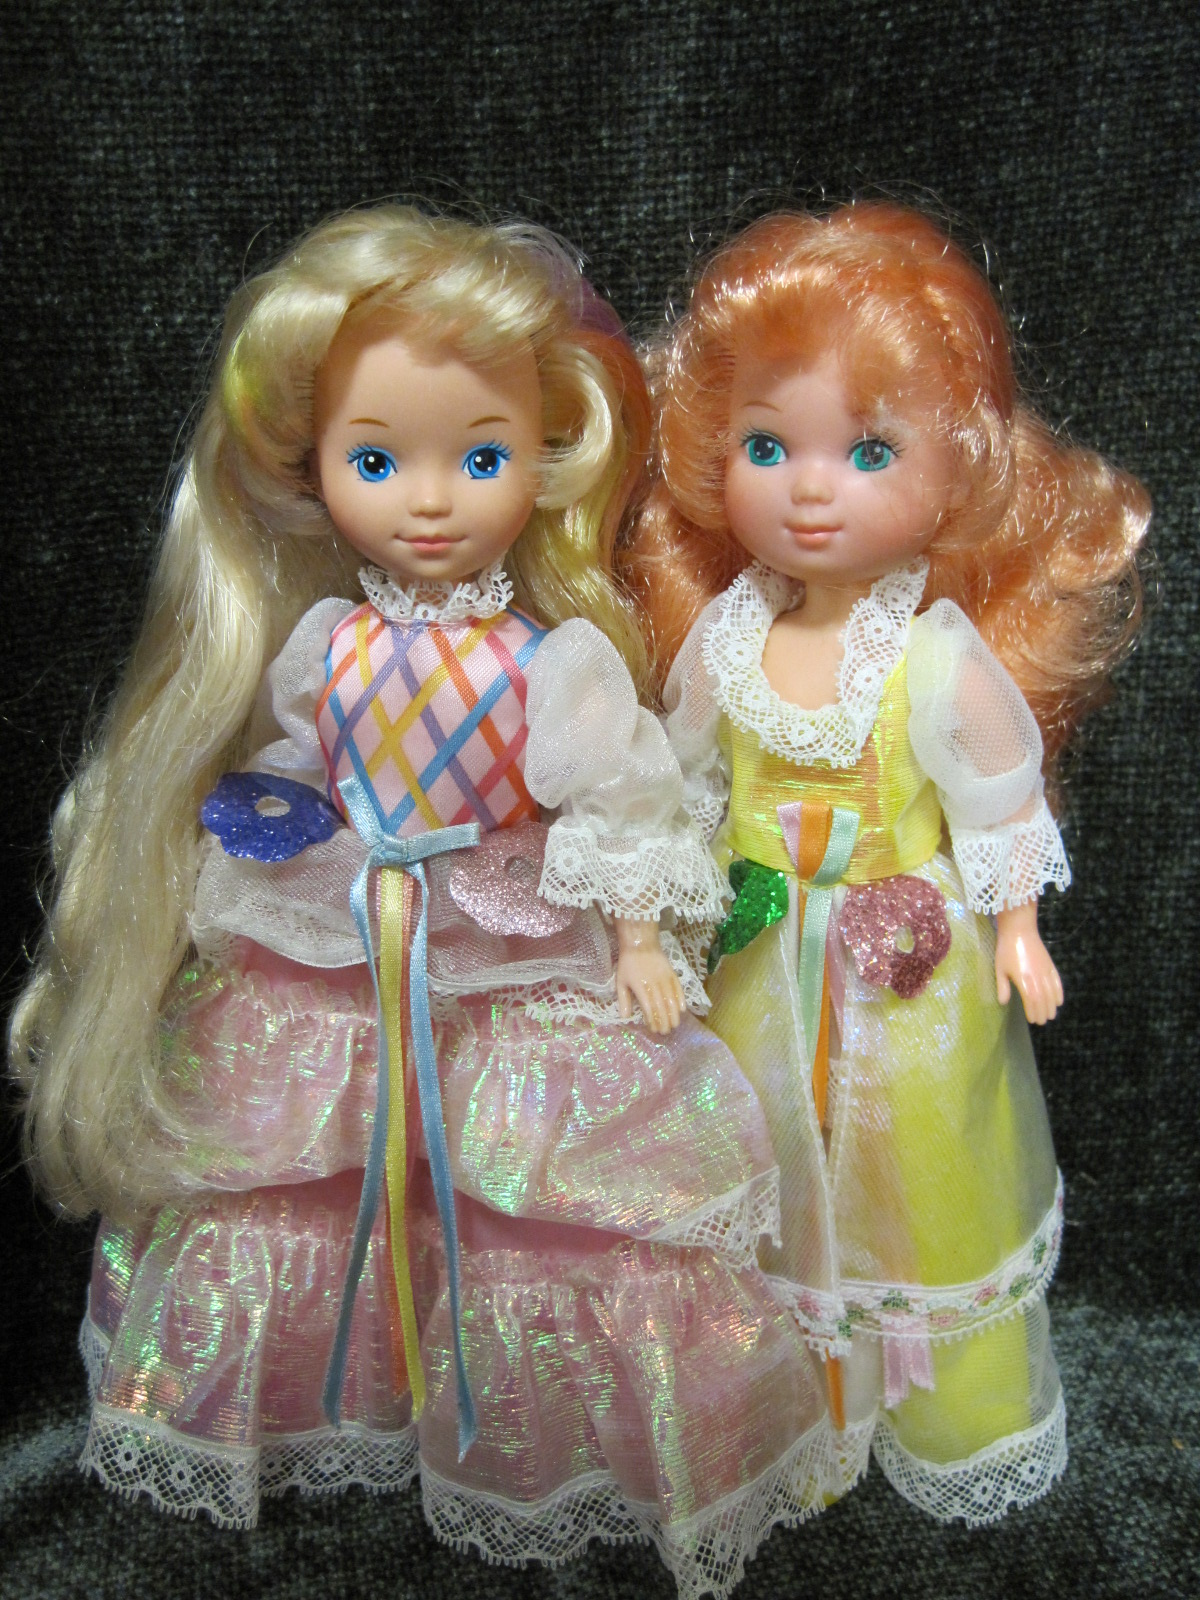 80s Toy Dolls : Never grow up a mom s guide to dolls few of